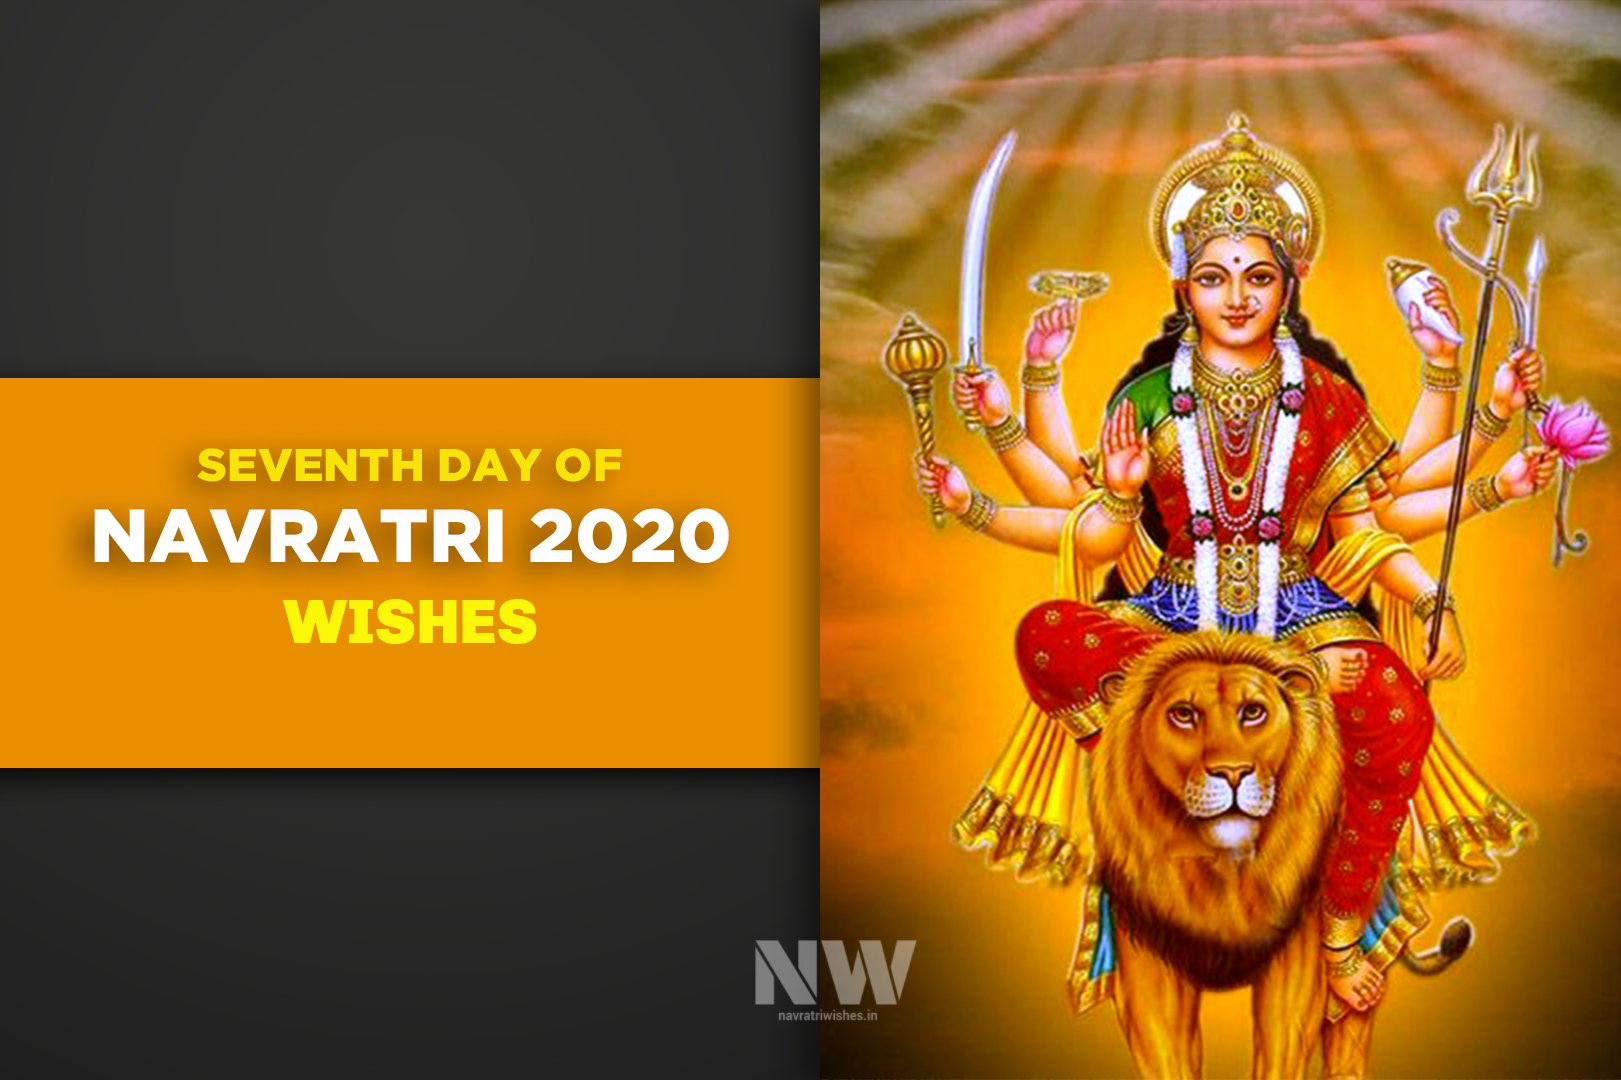 seventh-day-of-navratri-2020-wishes